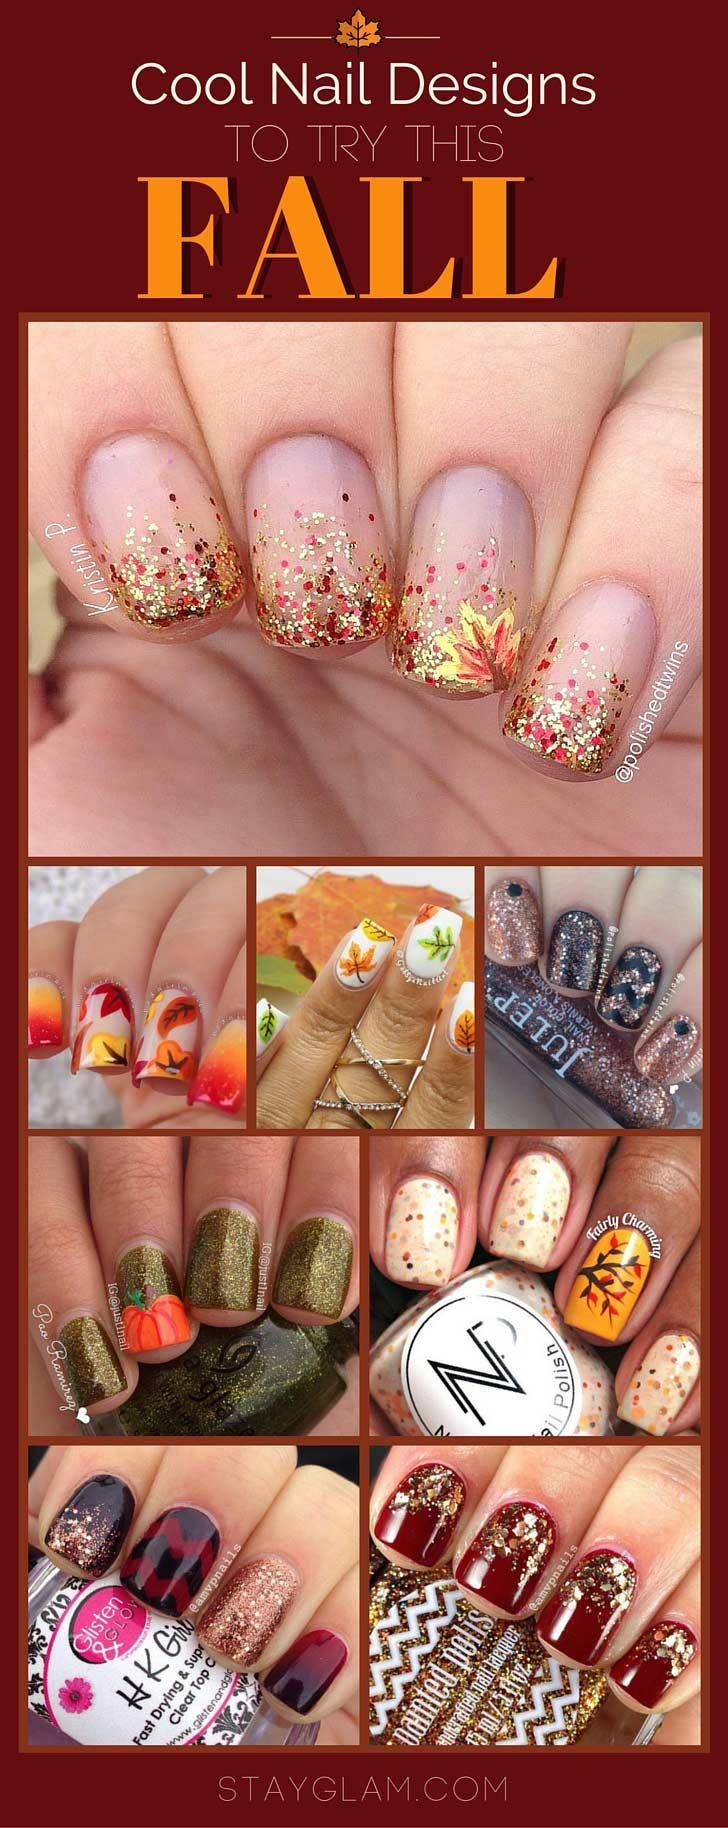 35 Cool Nail Designs to Try This Fall - 35 Cool Nail Designs To Try This Fall Makeup, Nail Nail And